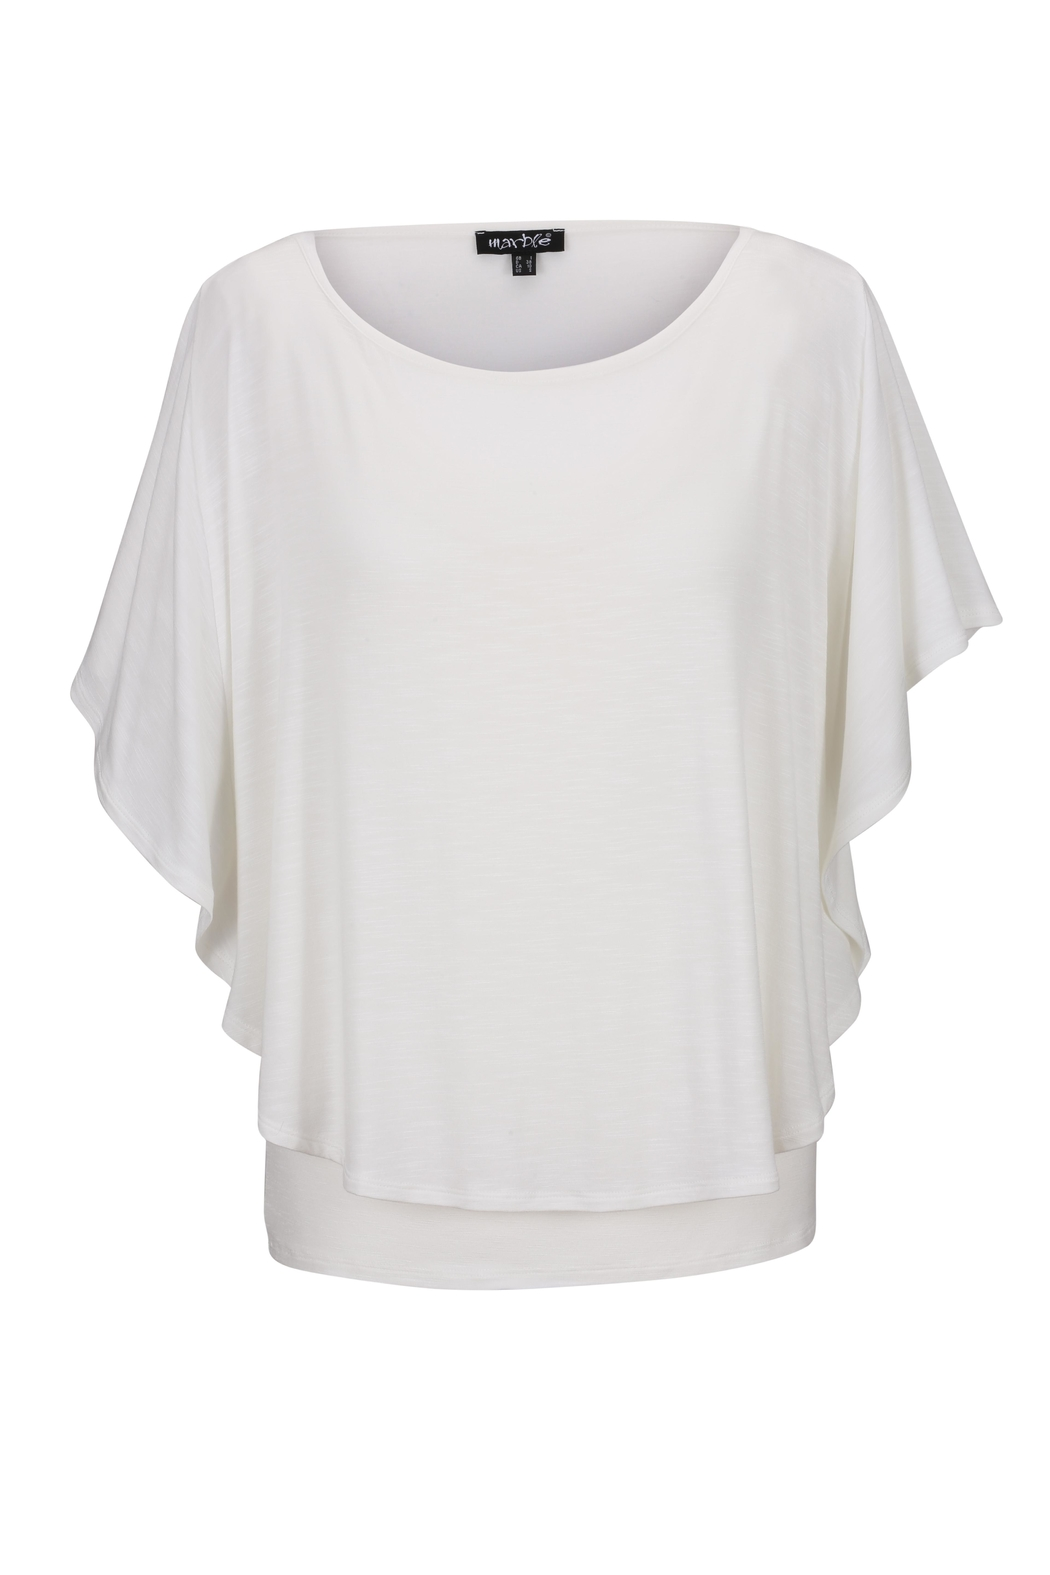 Marble Ivory Flutter-Sleeve Top - Main Image